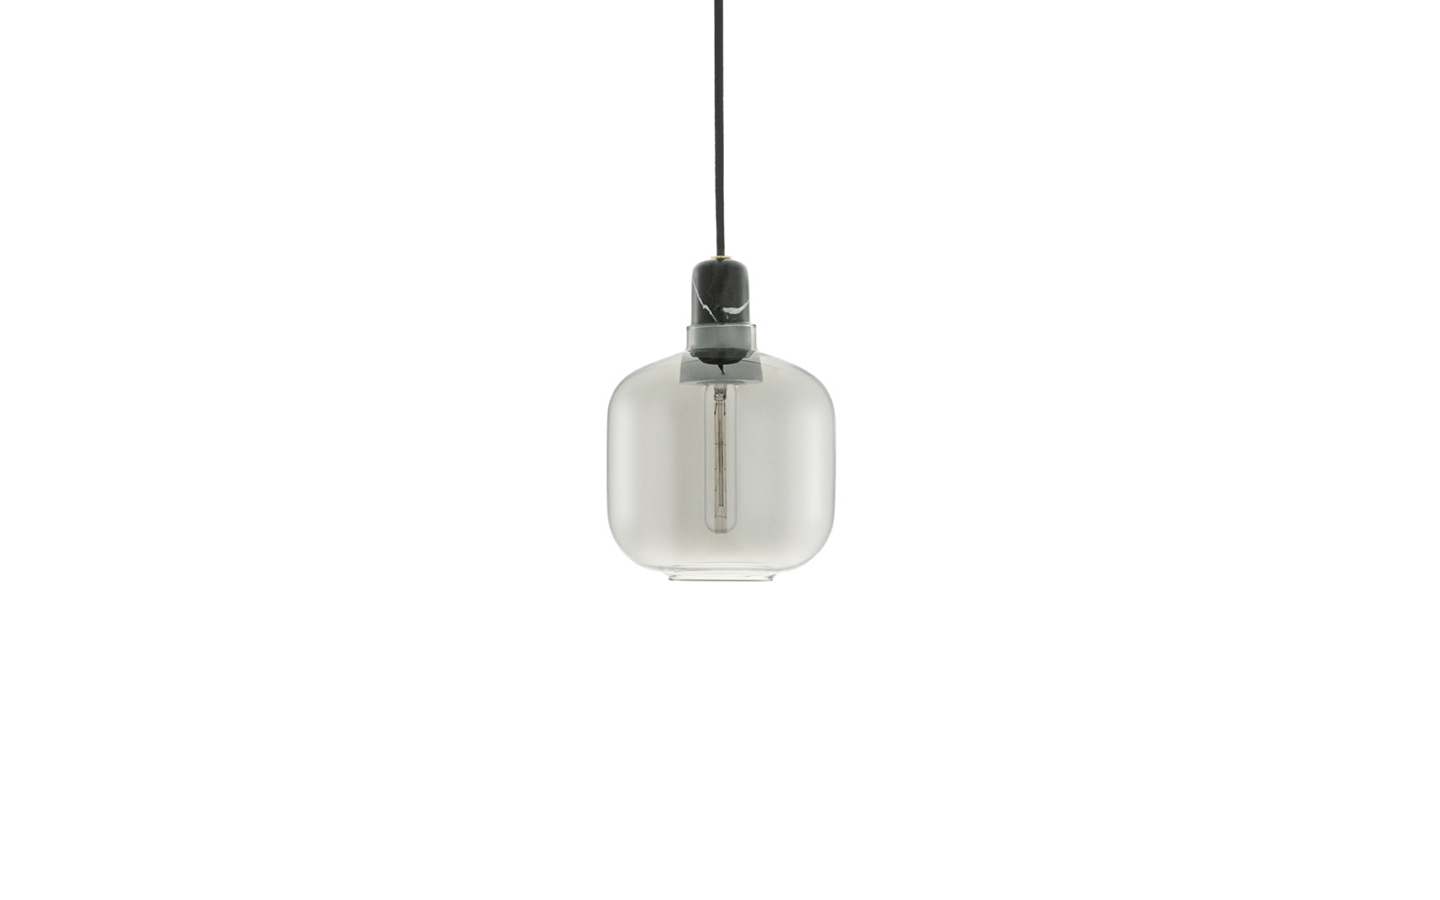 Product Image Amp Lamp Small